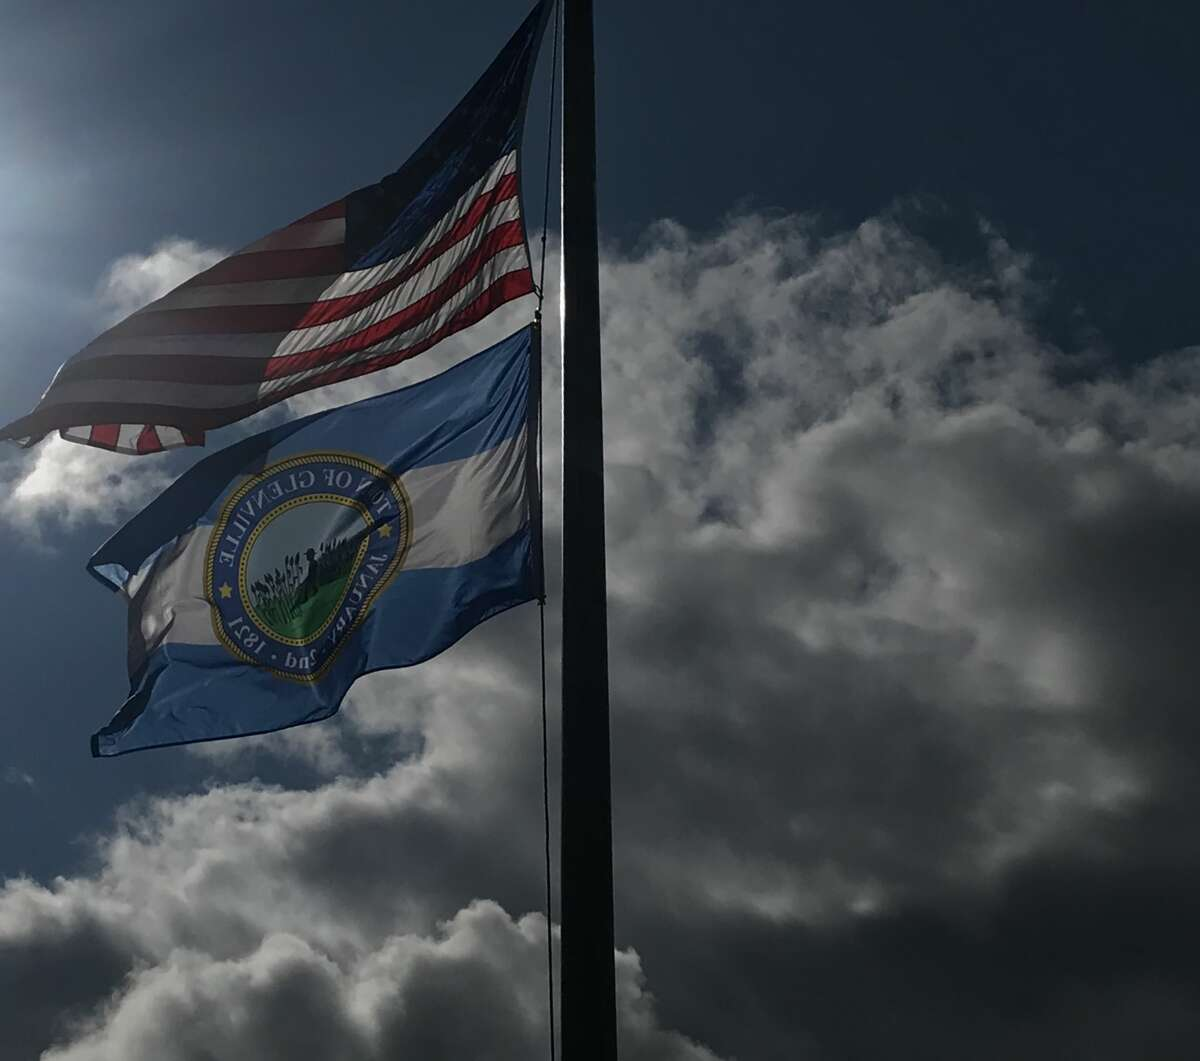 Officials raise a new flag at Glenville's Town Hall Saturday, Oct. 3. The town celebrates its 200th year this year.